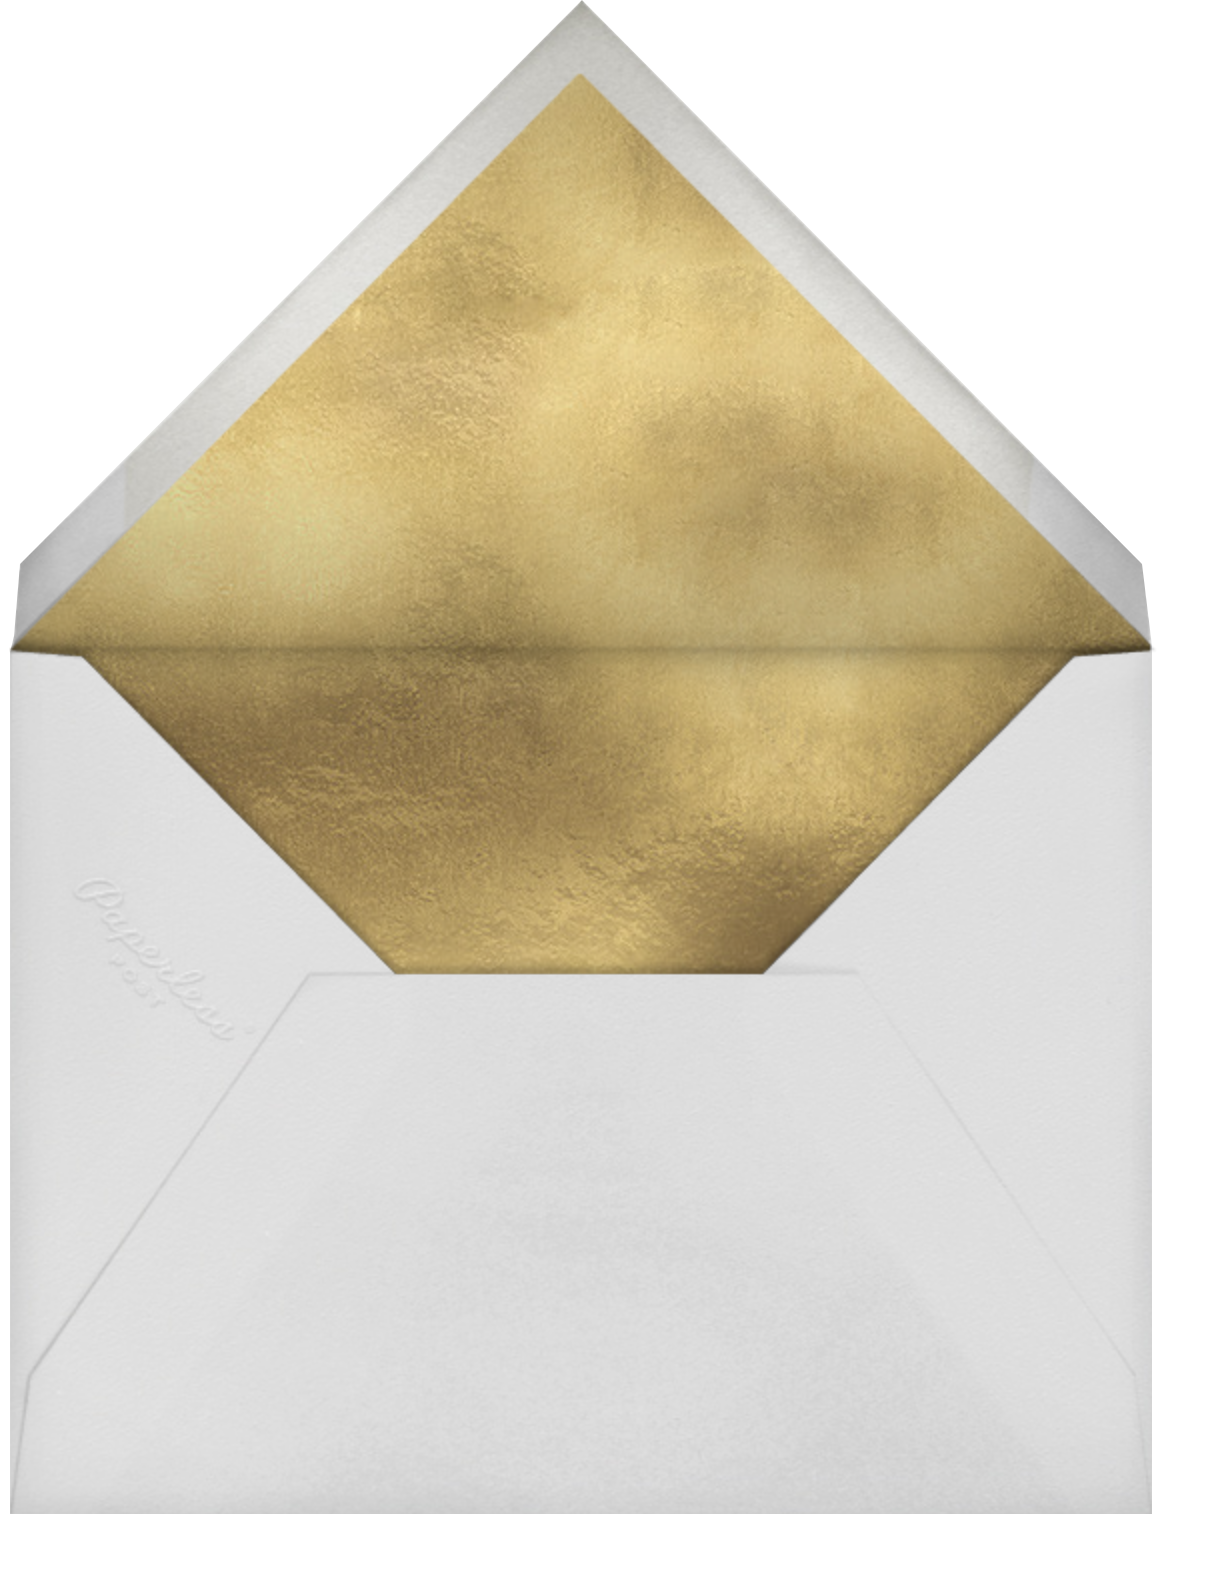 Bottle Behavior - Mr. Boddington's Studio - Holiday cards - envelope back